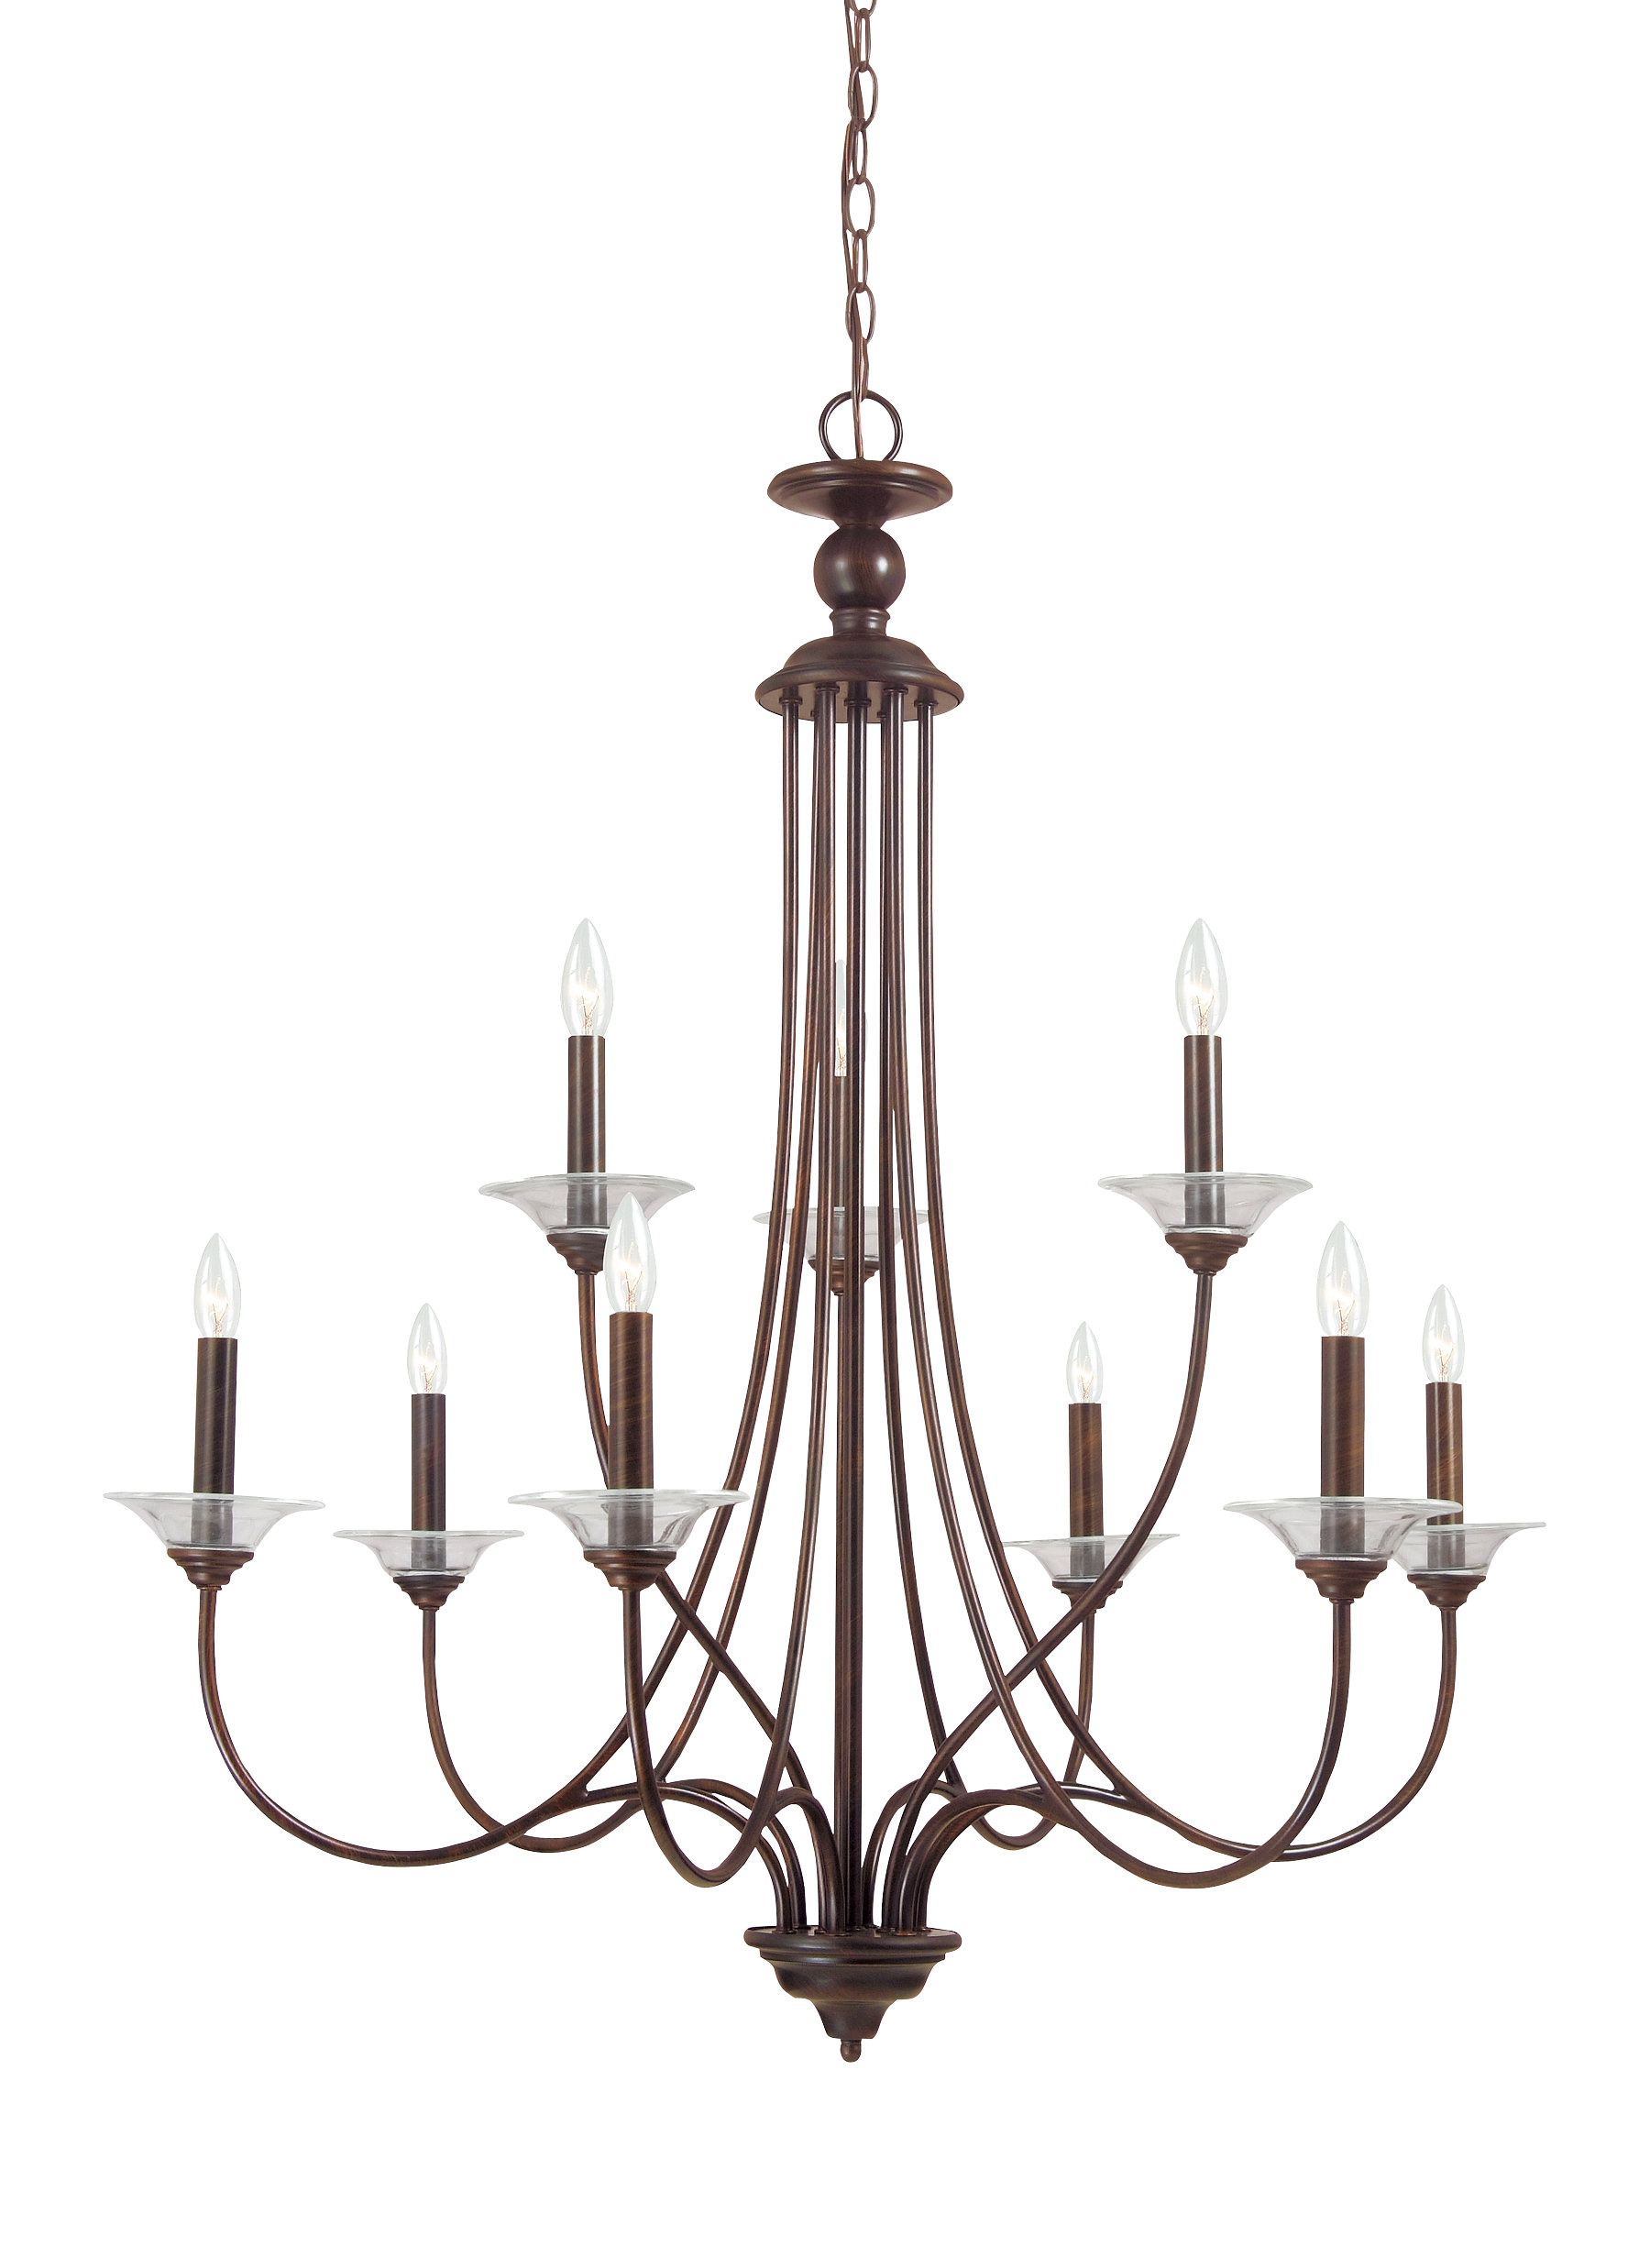 Kenedy 9 Light Candle Style Chandeliers Within Newest Barbro 9 Light Chandelier (Gallery 5 of 25)